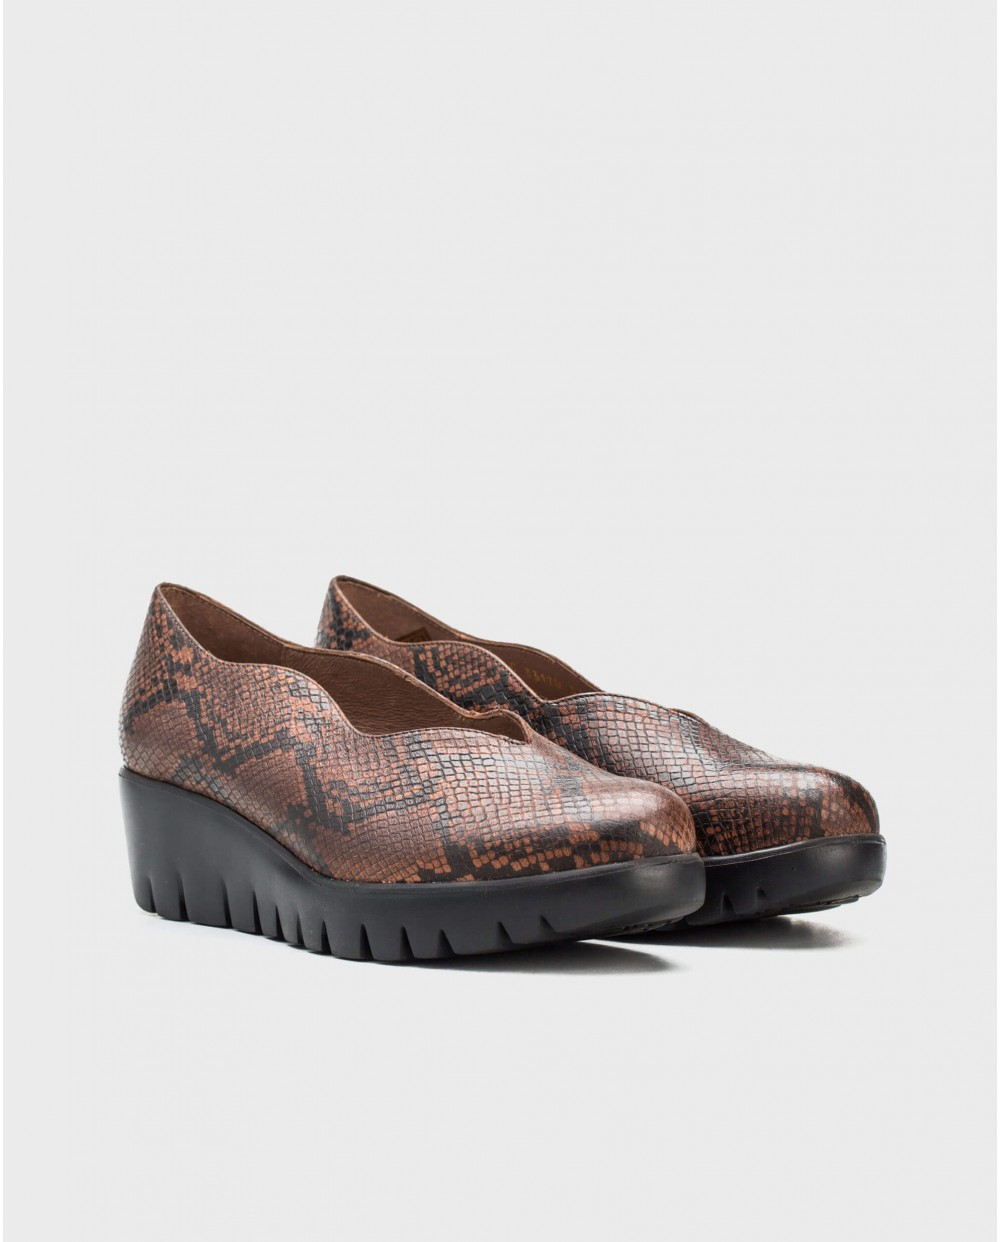 Wonders-Wedges-Leather snake print moccasins